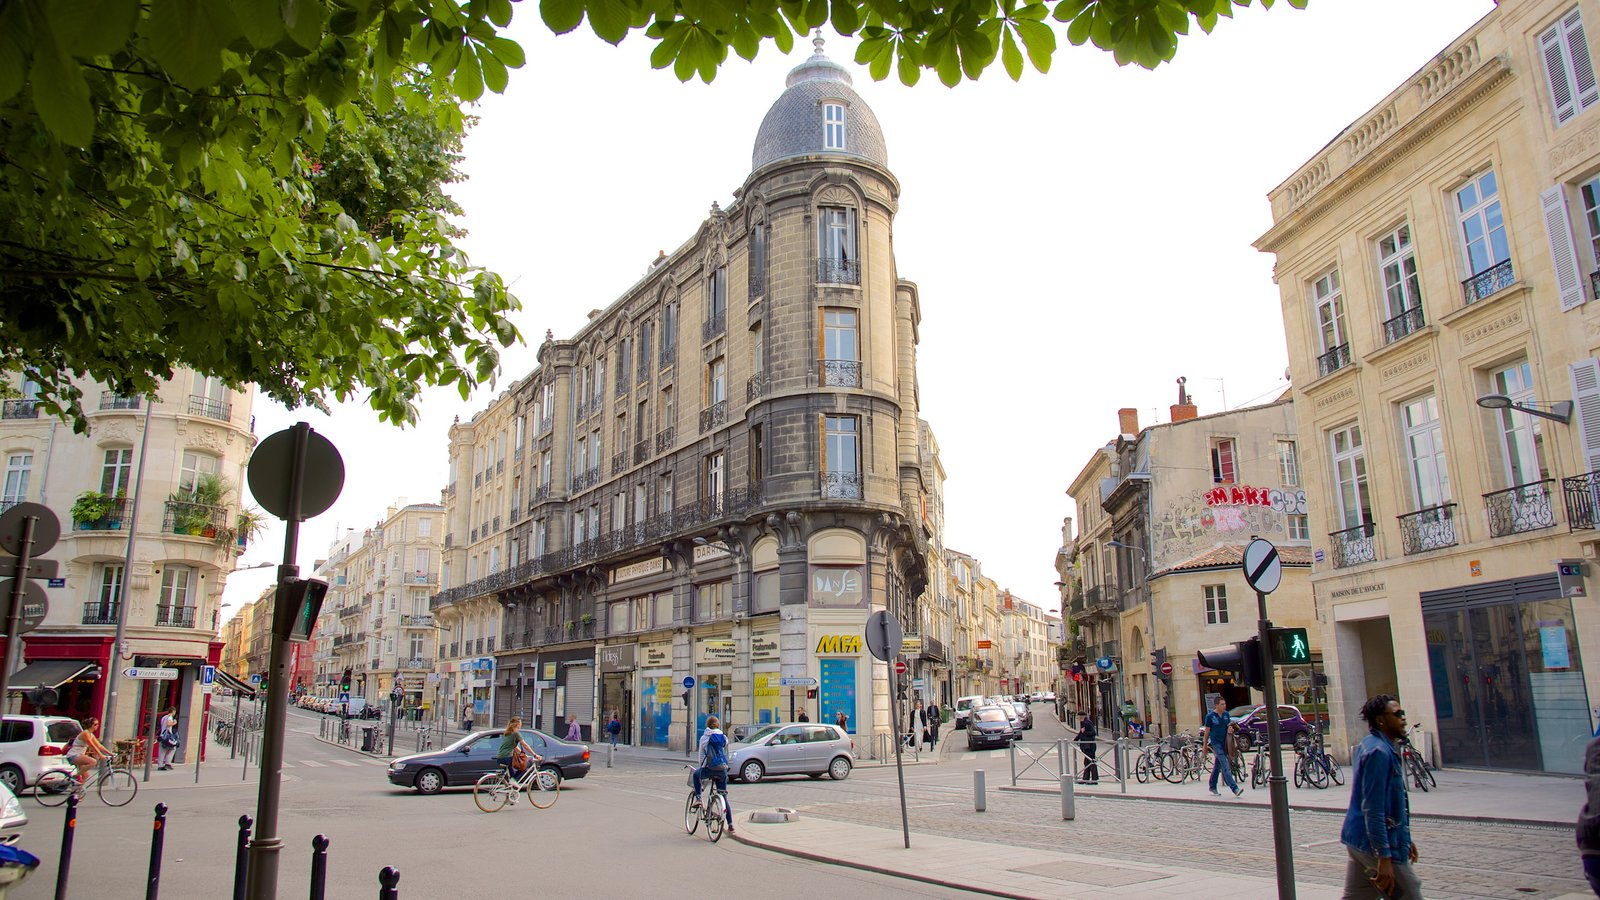 Bordeaux featuring street scenes and heritage elements